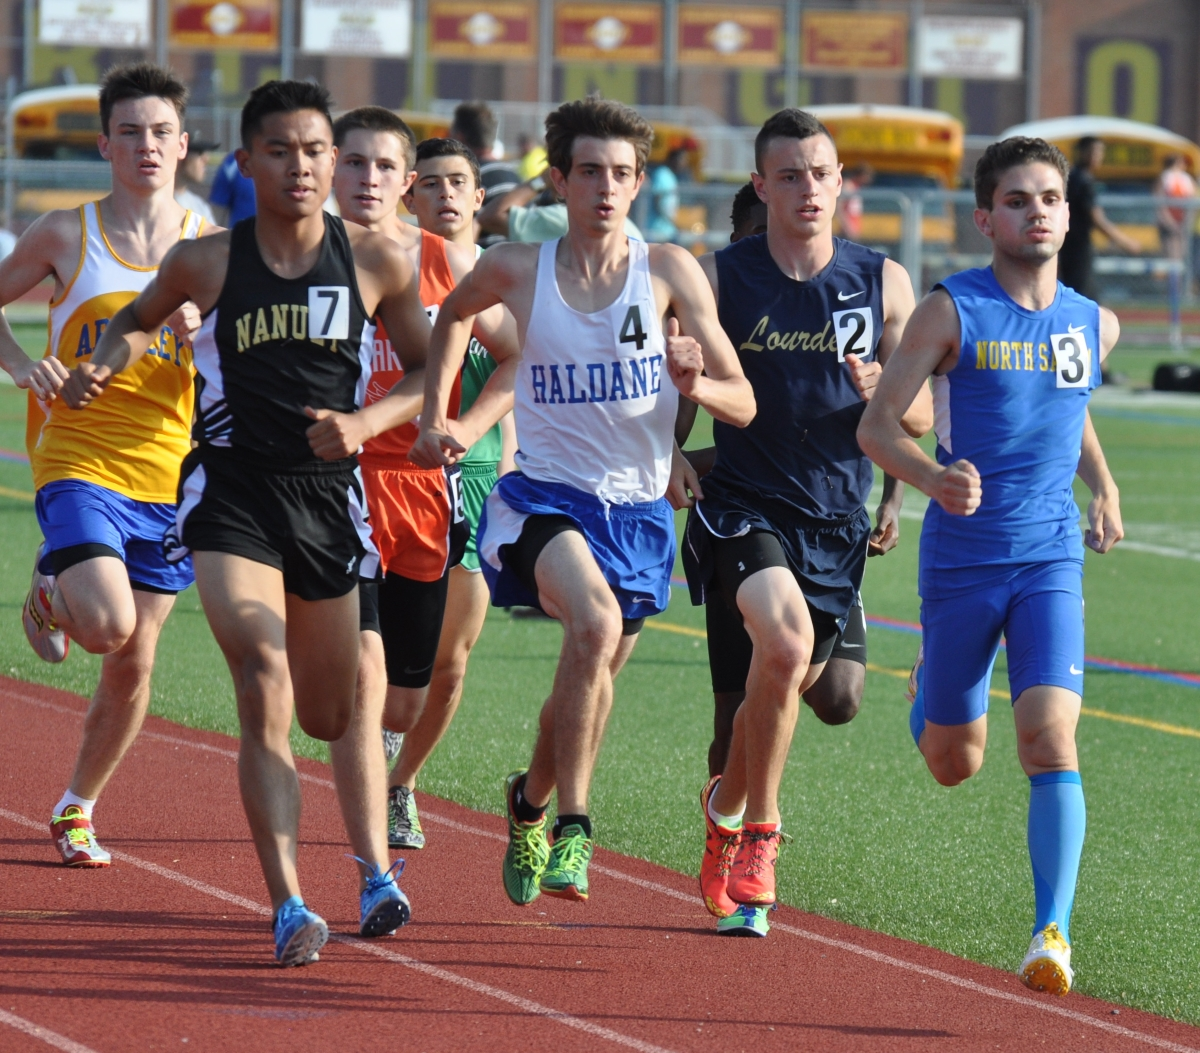 delaware high school track and field state meet